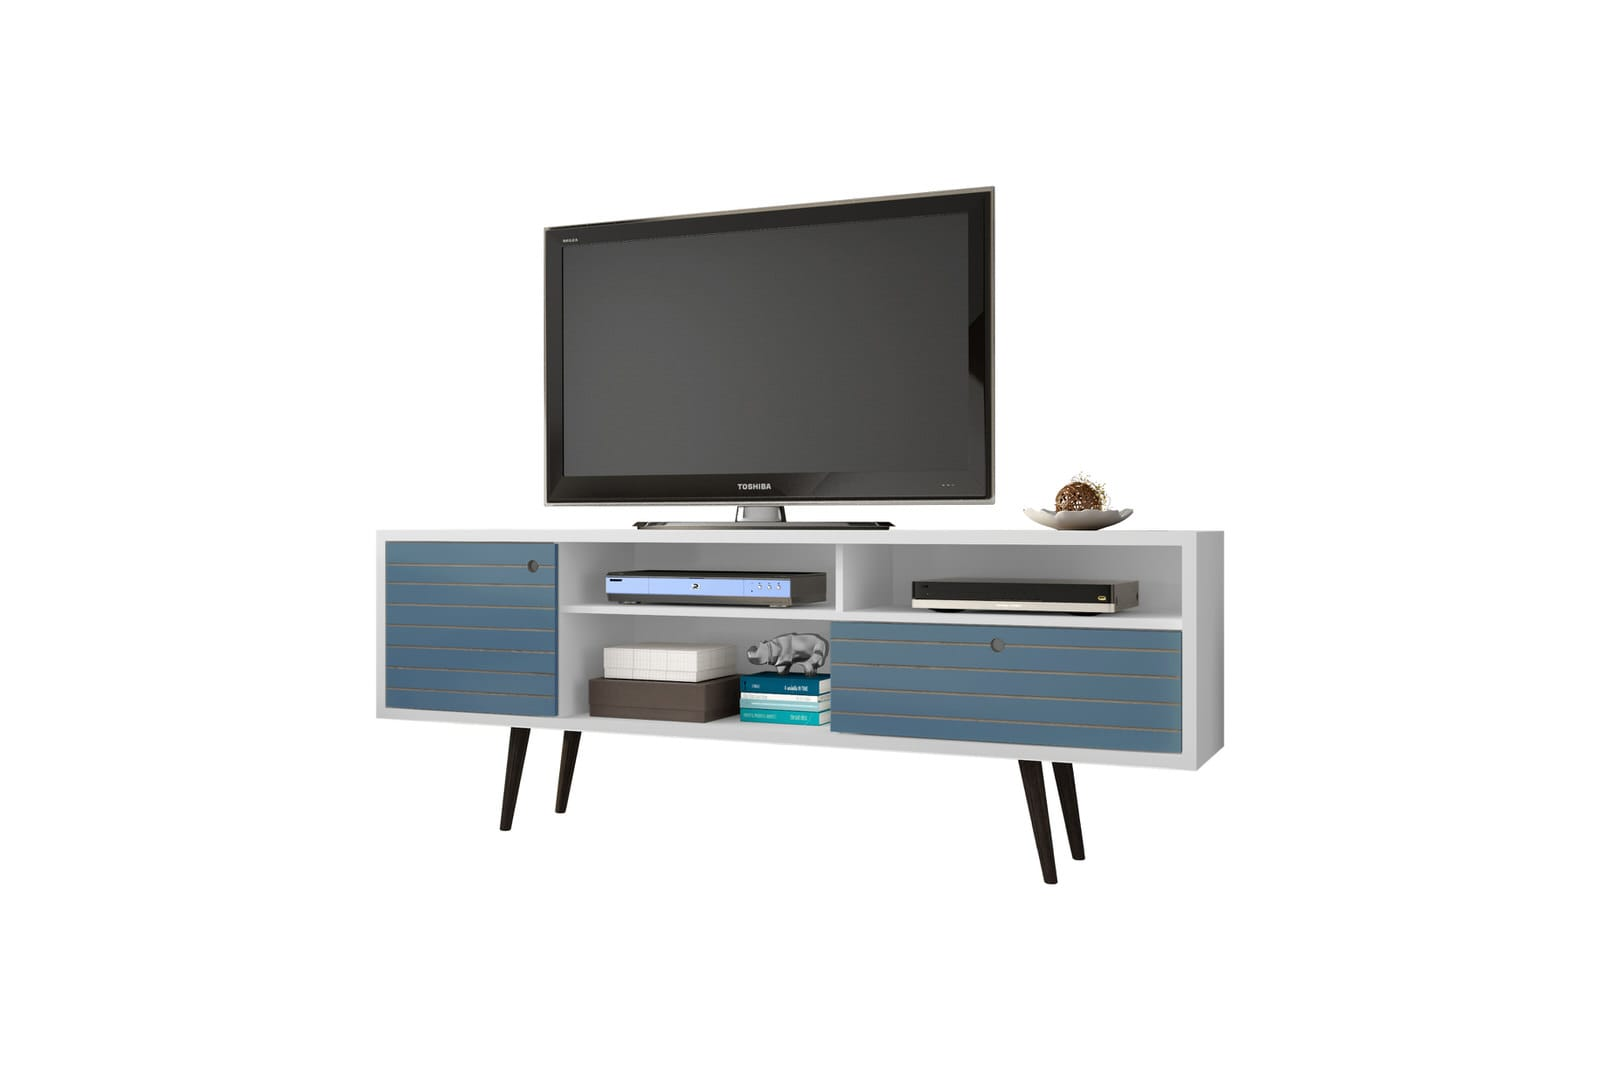 Modern Tv Liberty White Aqua Blue 70 86 Inch Mid Century Modern Tv Stand W 4 Shelving Spaces 1 Drawer Solid Wood Legs By Manhattan